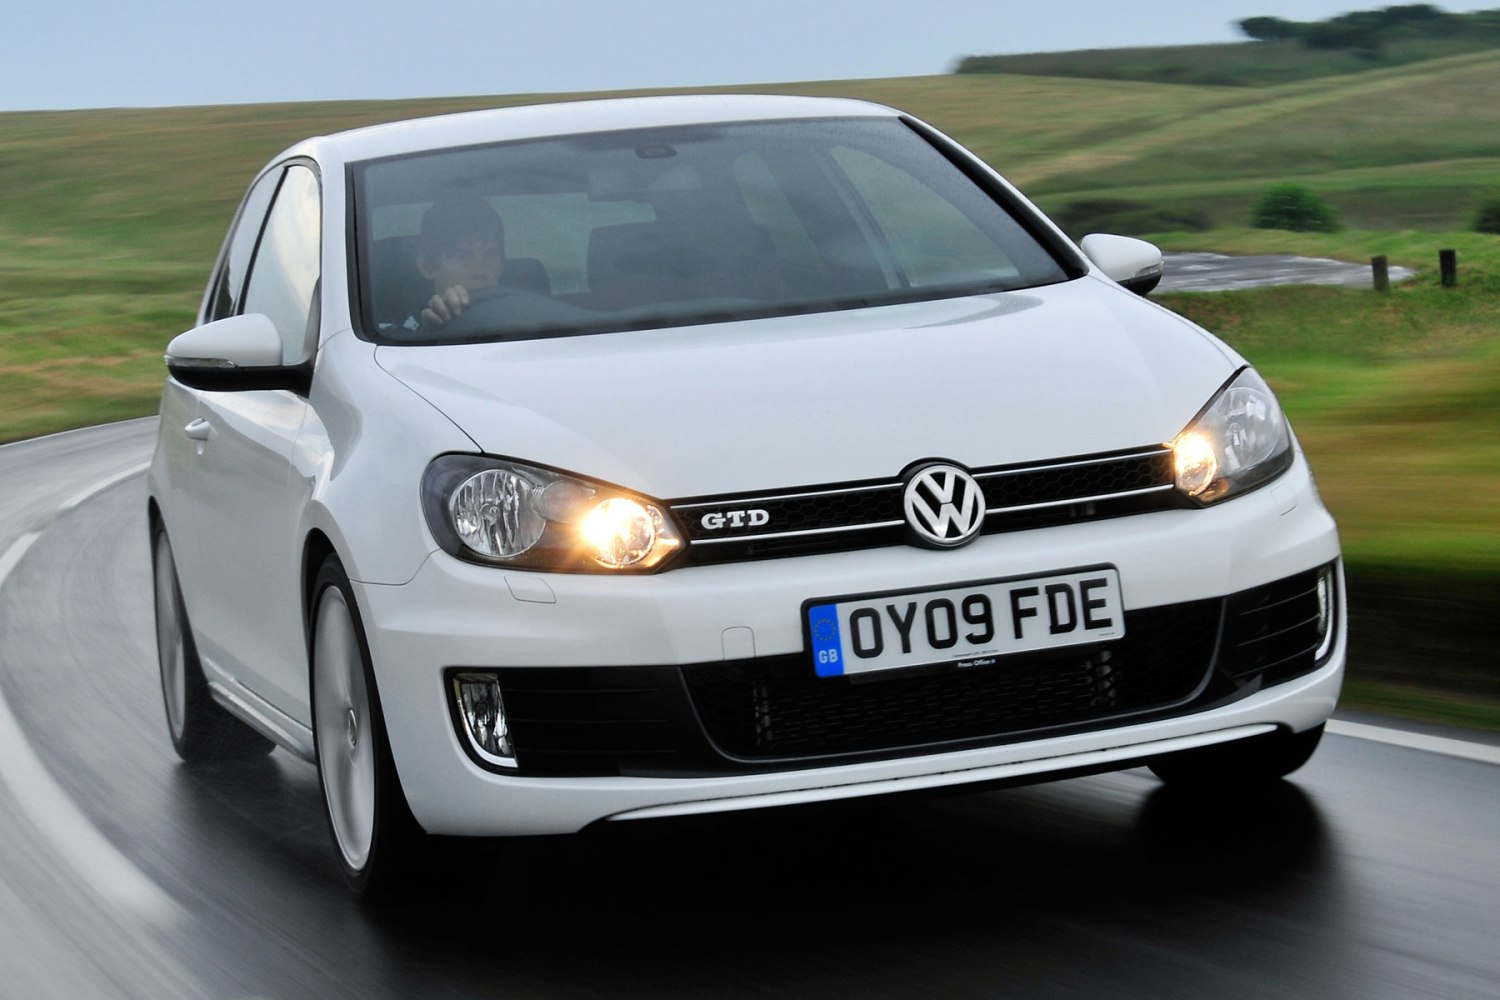 VW emissions scandal has dented faith in car companies but not in diesel